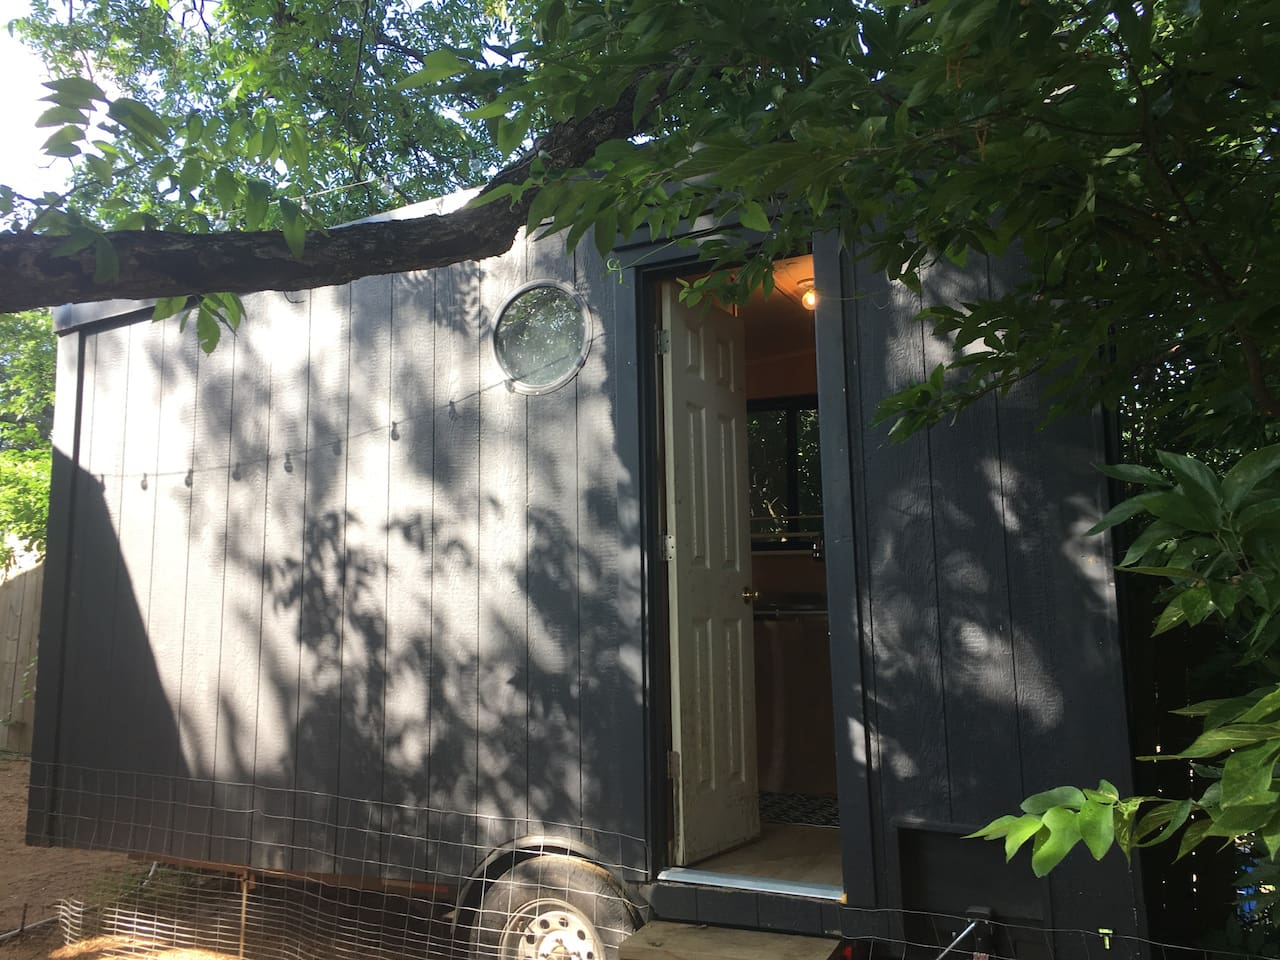 Eastside birchbox tiny house - come and stay!